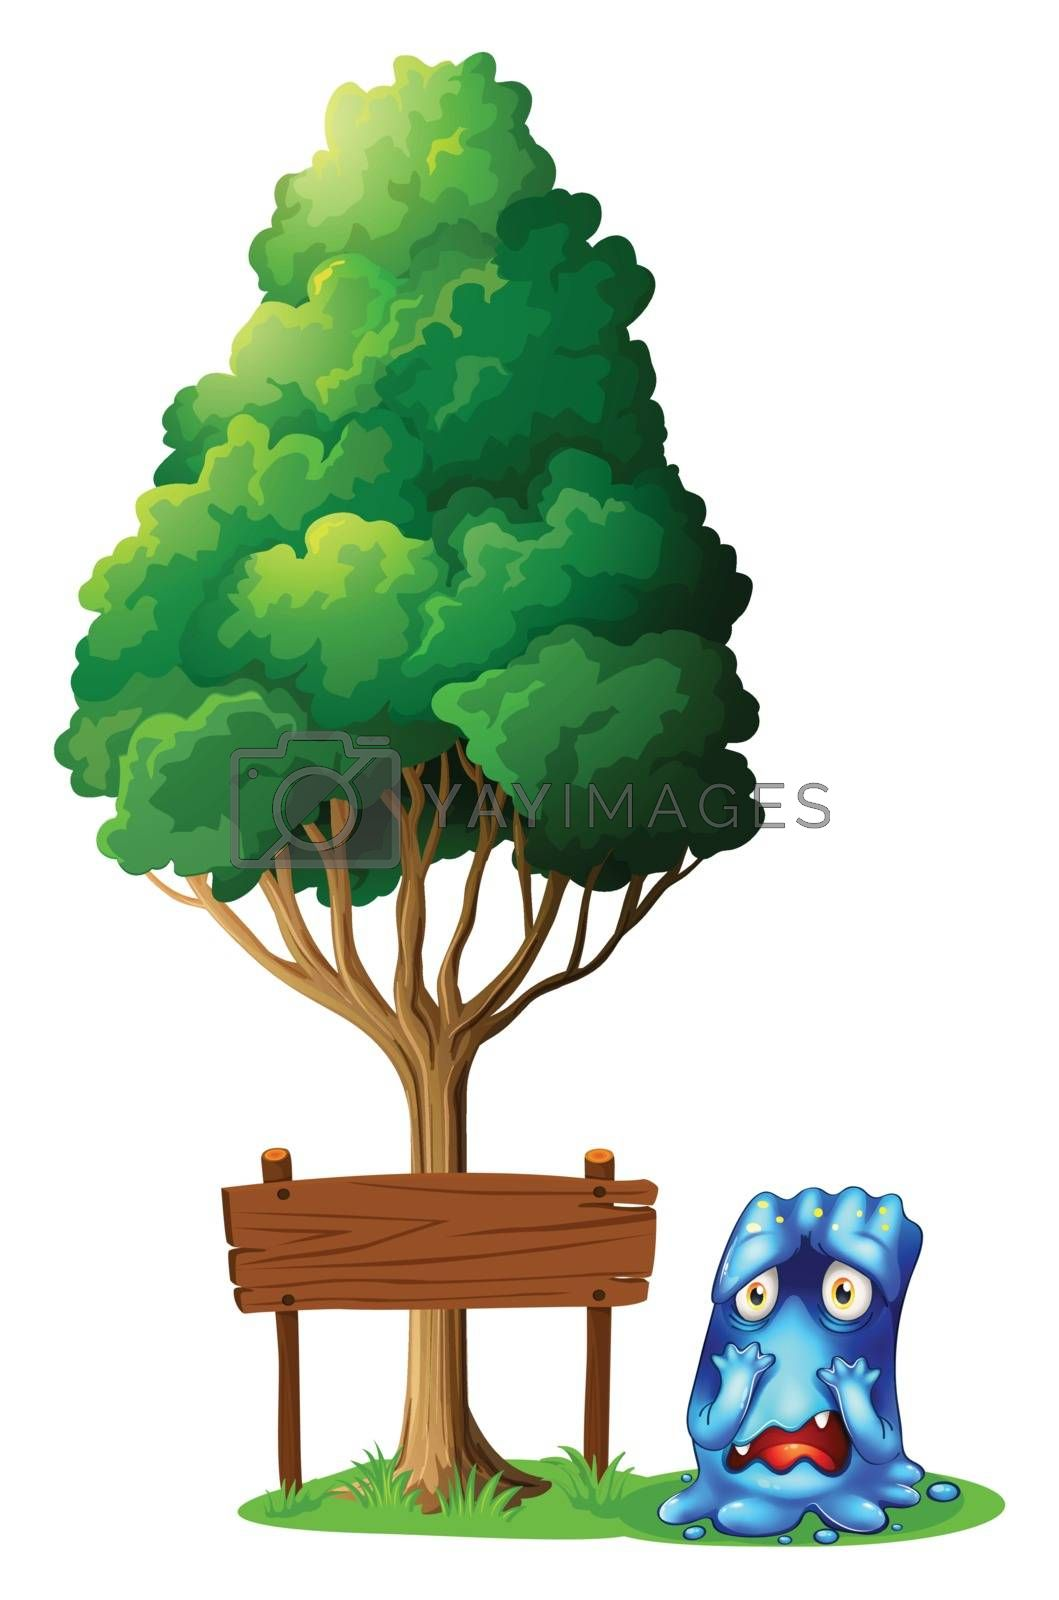 Illustration of an empty signboard under the tree beside the worried monster on a white background